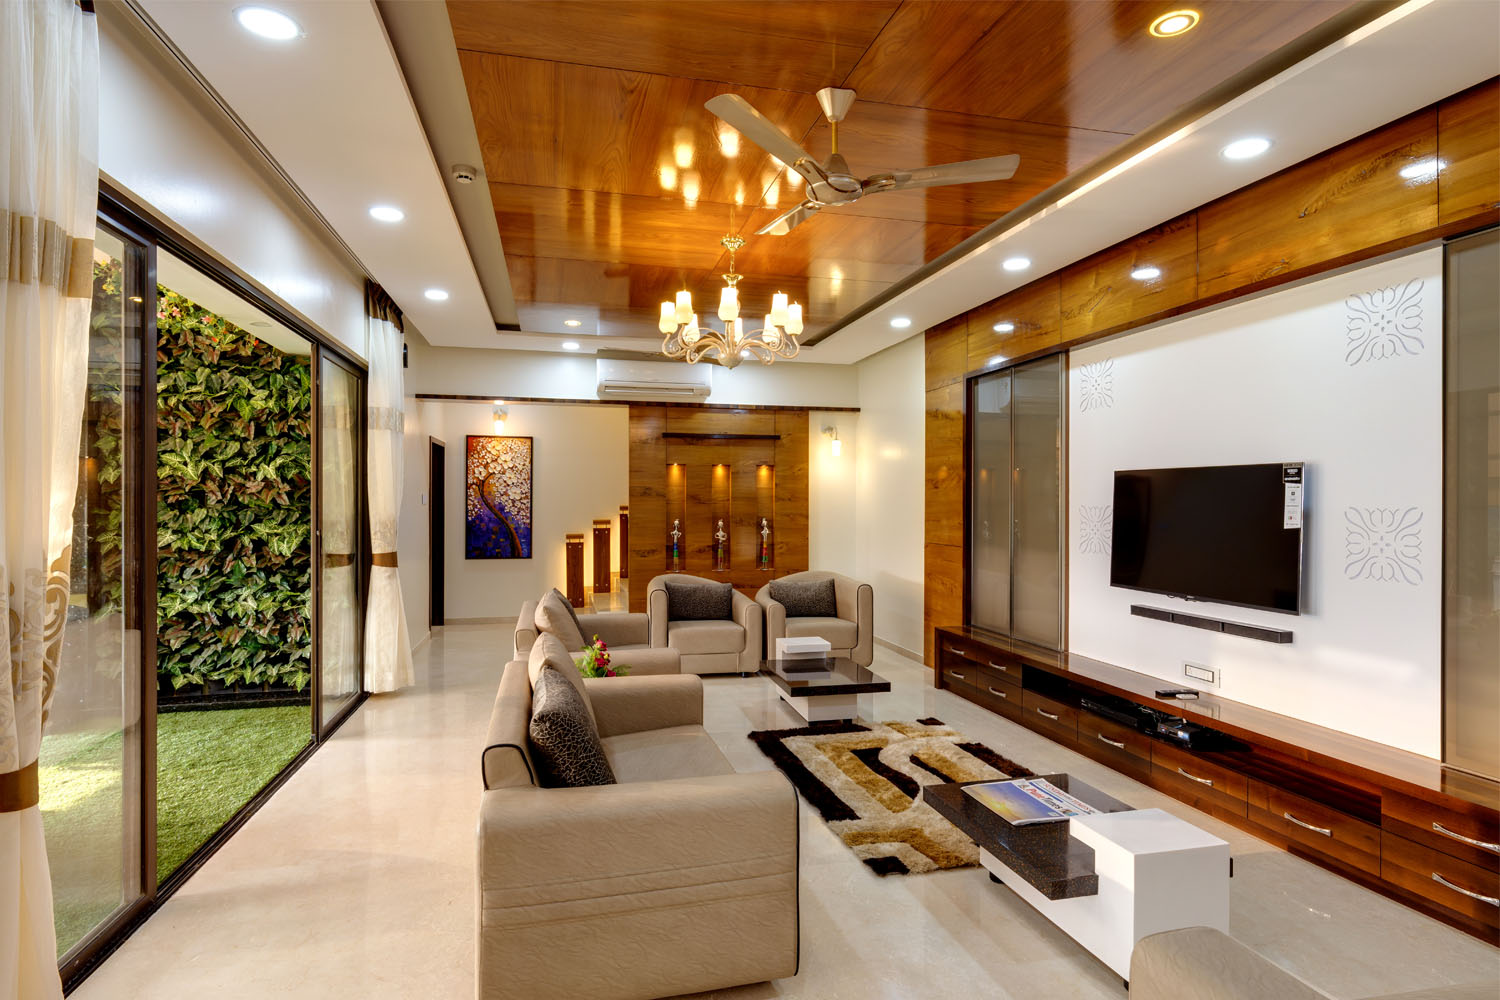 Best interior designer pune nerlekar interior designing for Designs of the interior